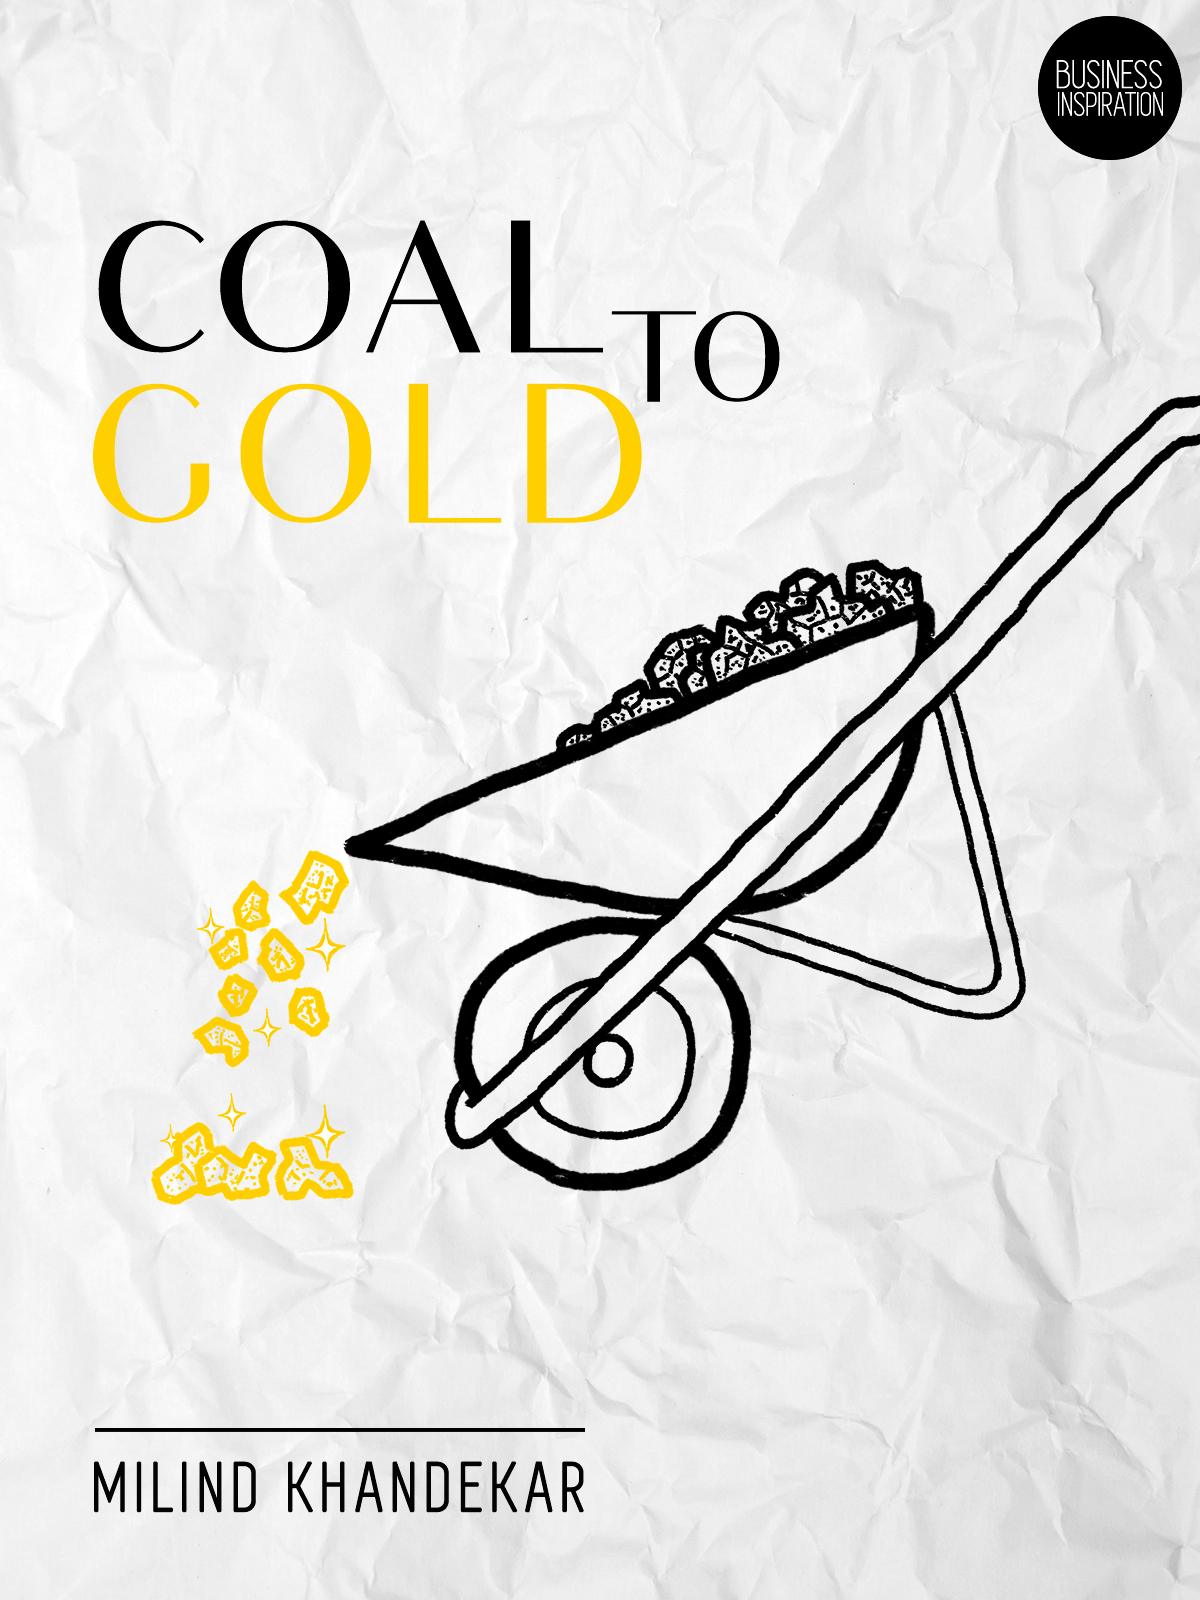 Coal to Gold